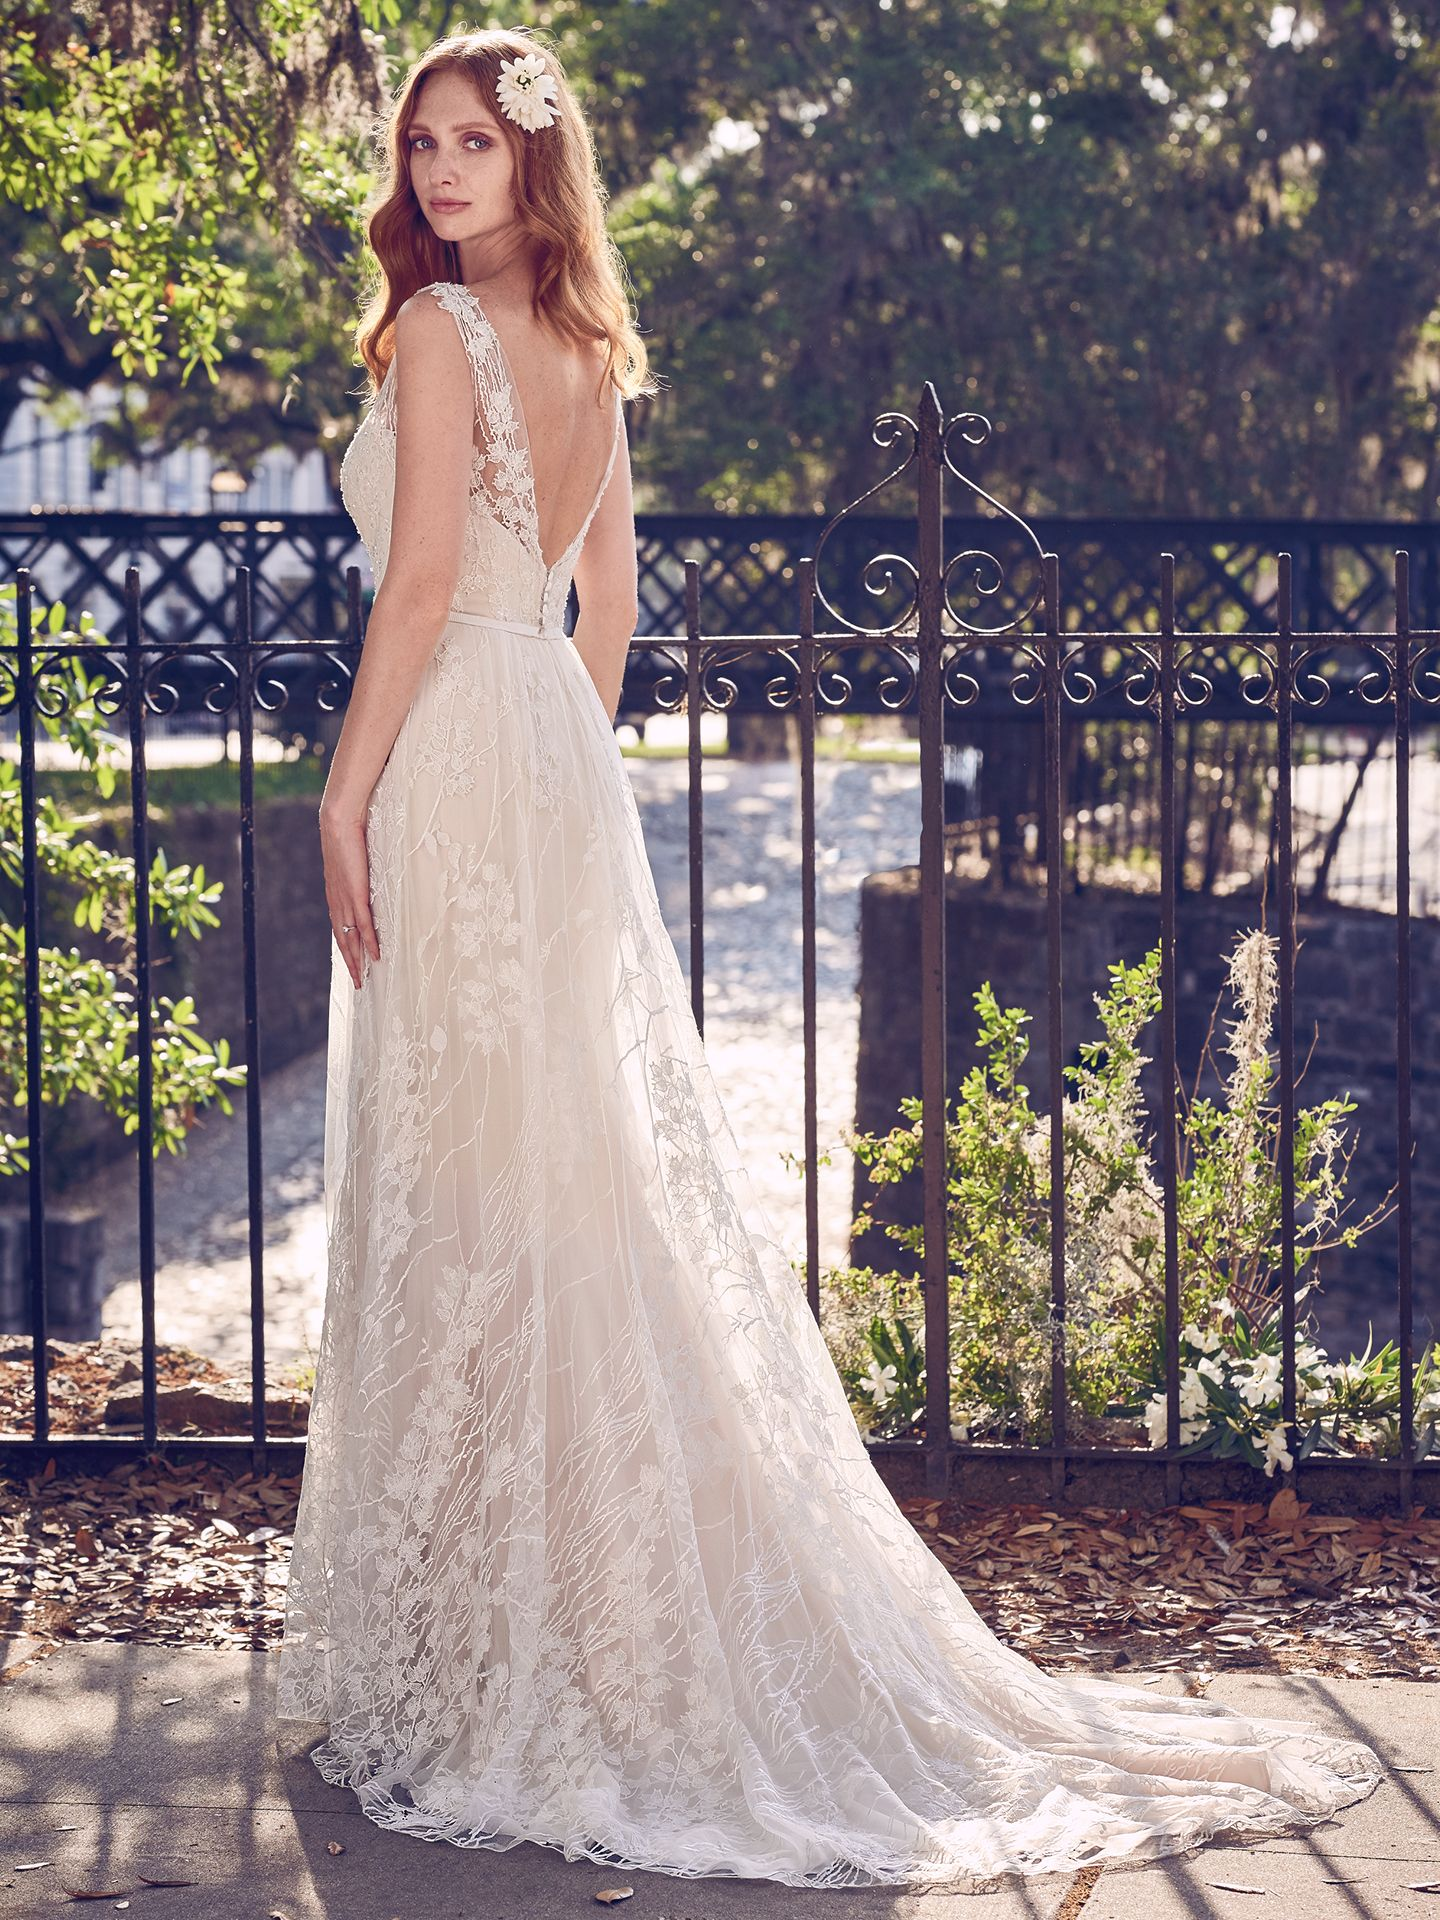 6 best wedding dresses for a rustic wedding love maggie love maggie 6 best wedding dresses for a rustic wedding geddes wedding dress by maggie sottero junglespirit